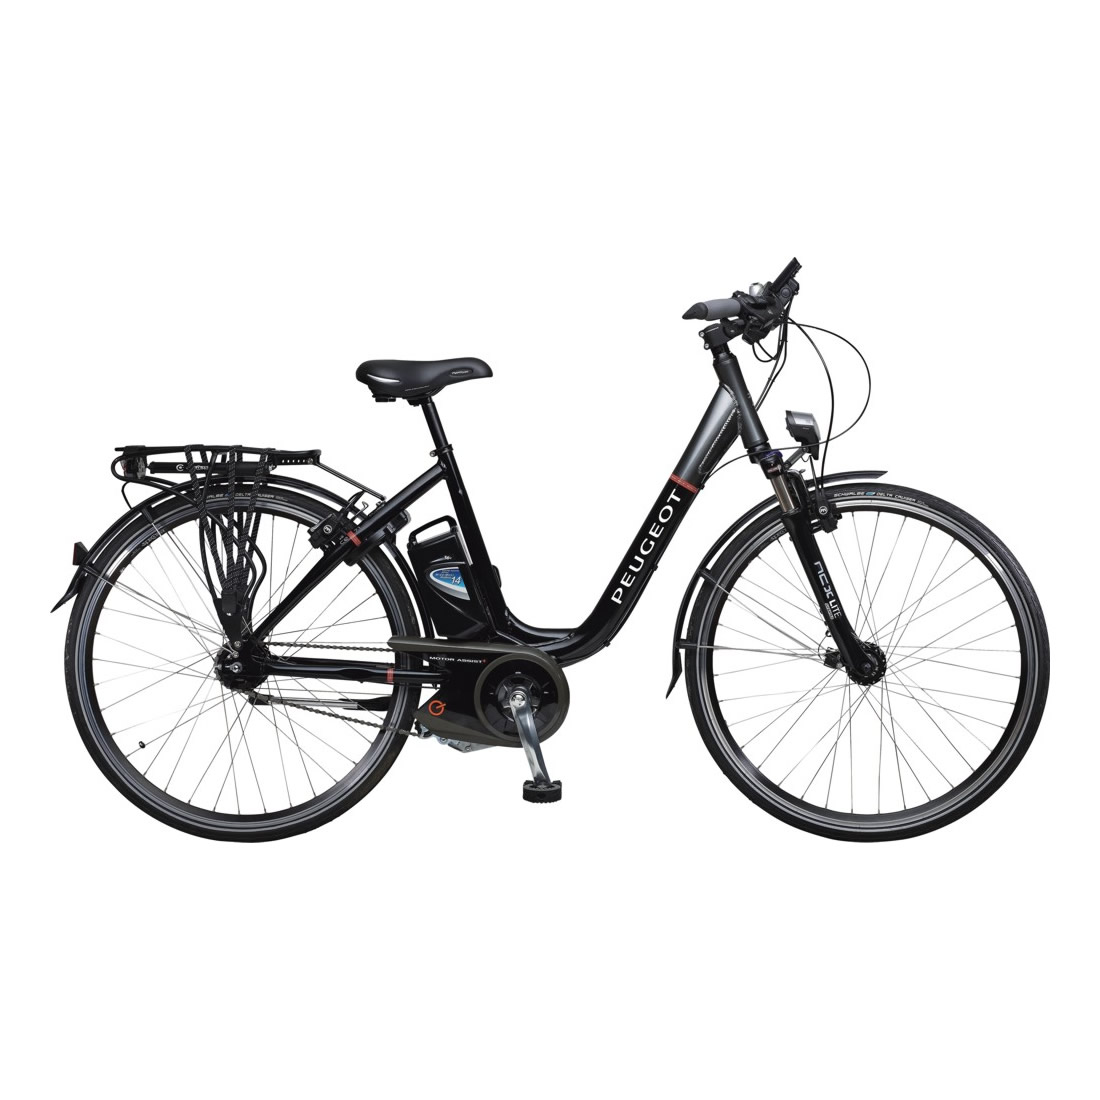 301 moved permanently - Velo electrique avis consommateur ...